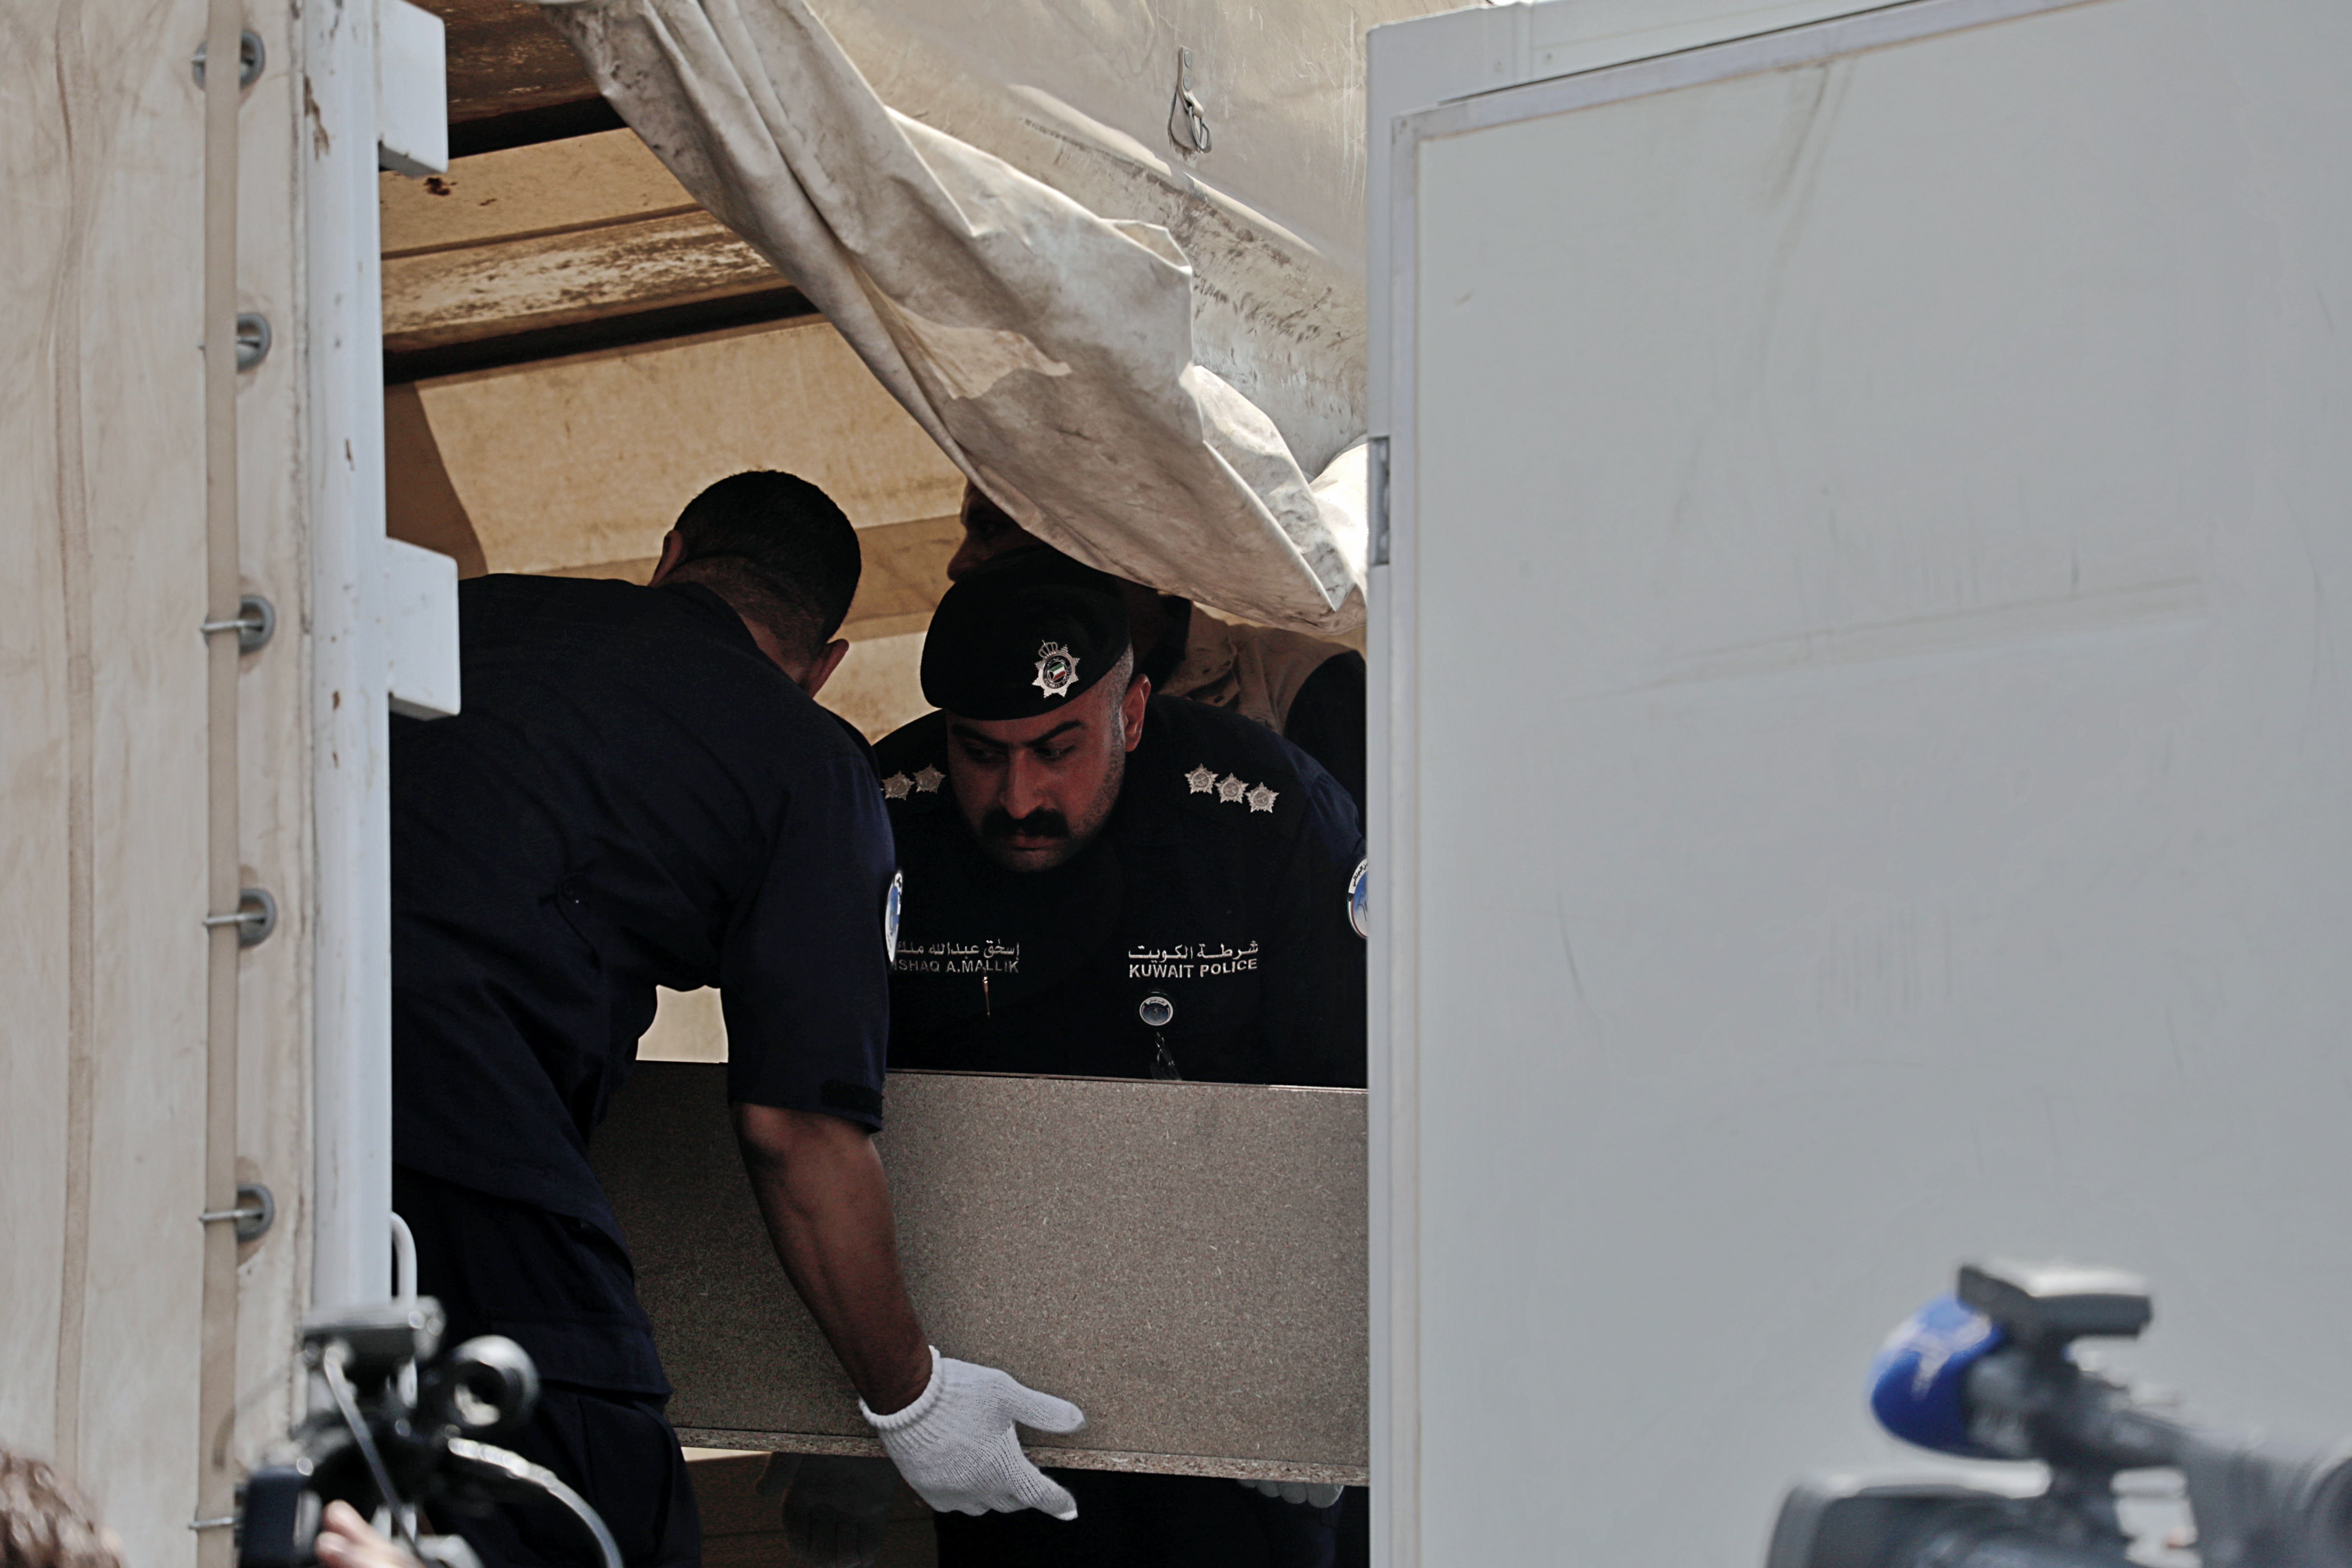 A casket holding the remains of one of 48 Kuwaiti citizens is transferred from an Iraqi truck to a Kuwaiti truck during a handover ceremony at the Safwan border crossing, in Iraq, Thursday, Aug. 8, 2019. Iraqi and Kuwaiti state media said Iraq has handed over to Kuwait the remains of 48 Kuwaitis who went missing during the 1991 Gulf War. (AP Photo)